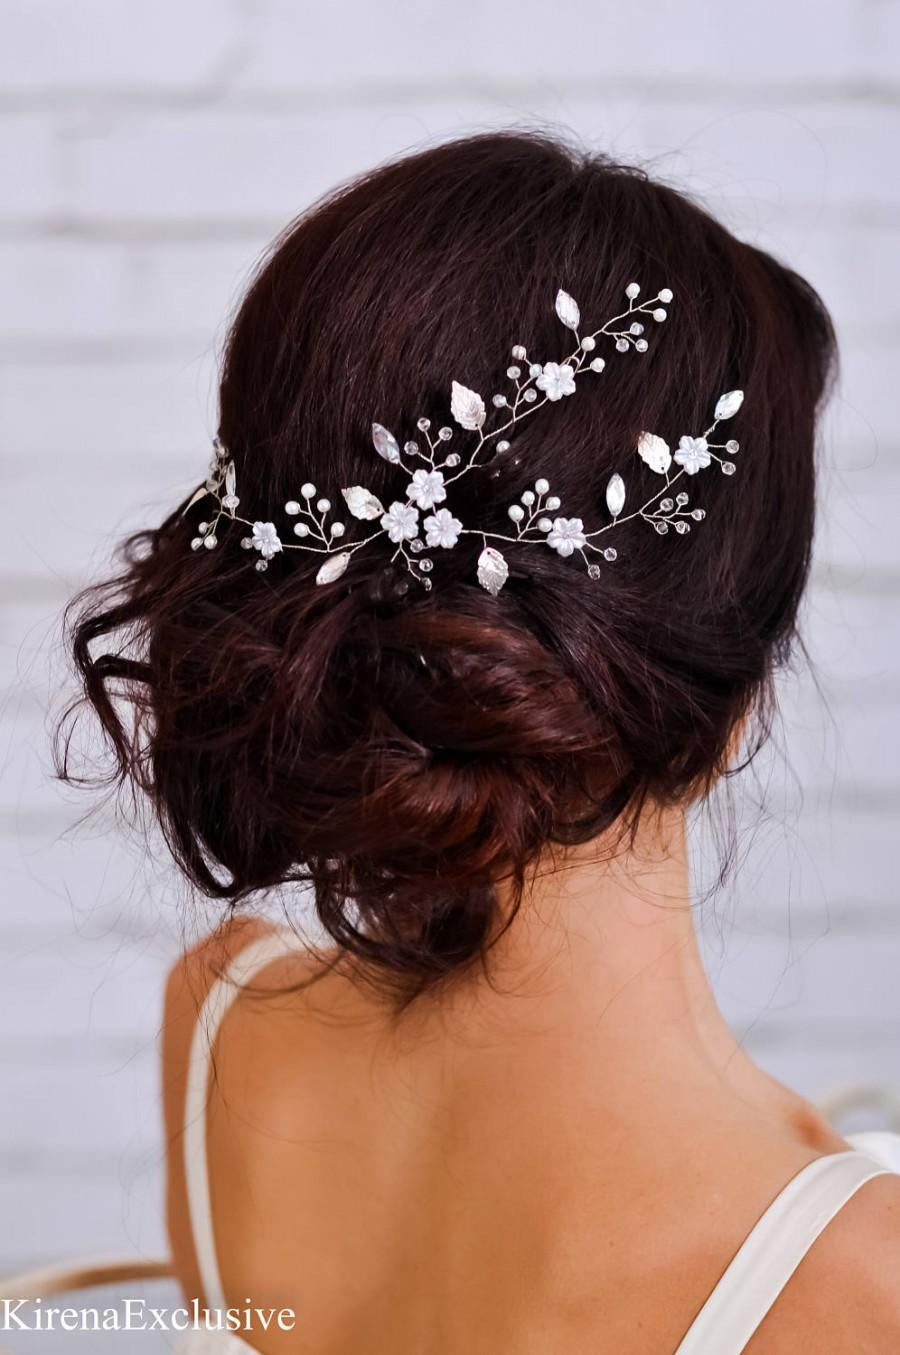 Hochzeit - Wedding headpiece Bridal headband Wedding hair flower Bridal flower hairpiece Floral hair vine Wedding hair band Flower headband crystal